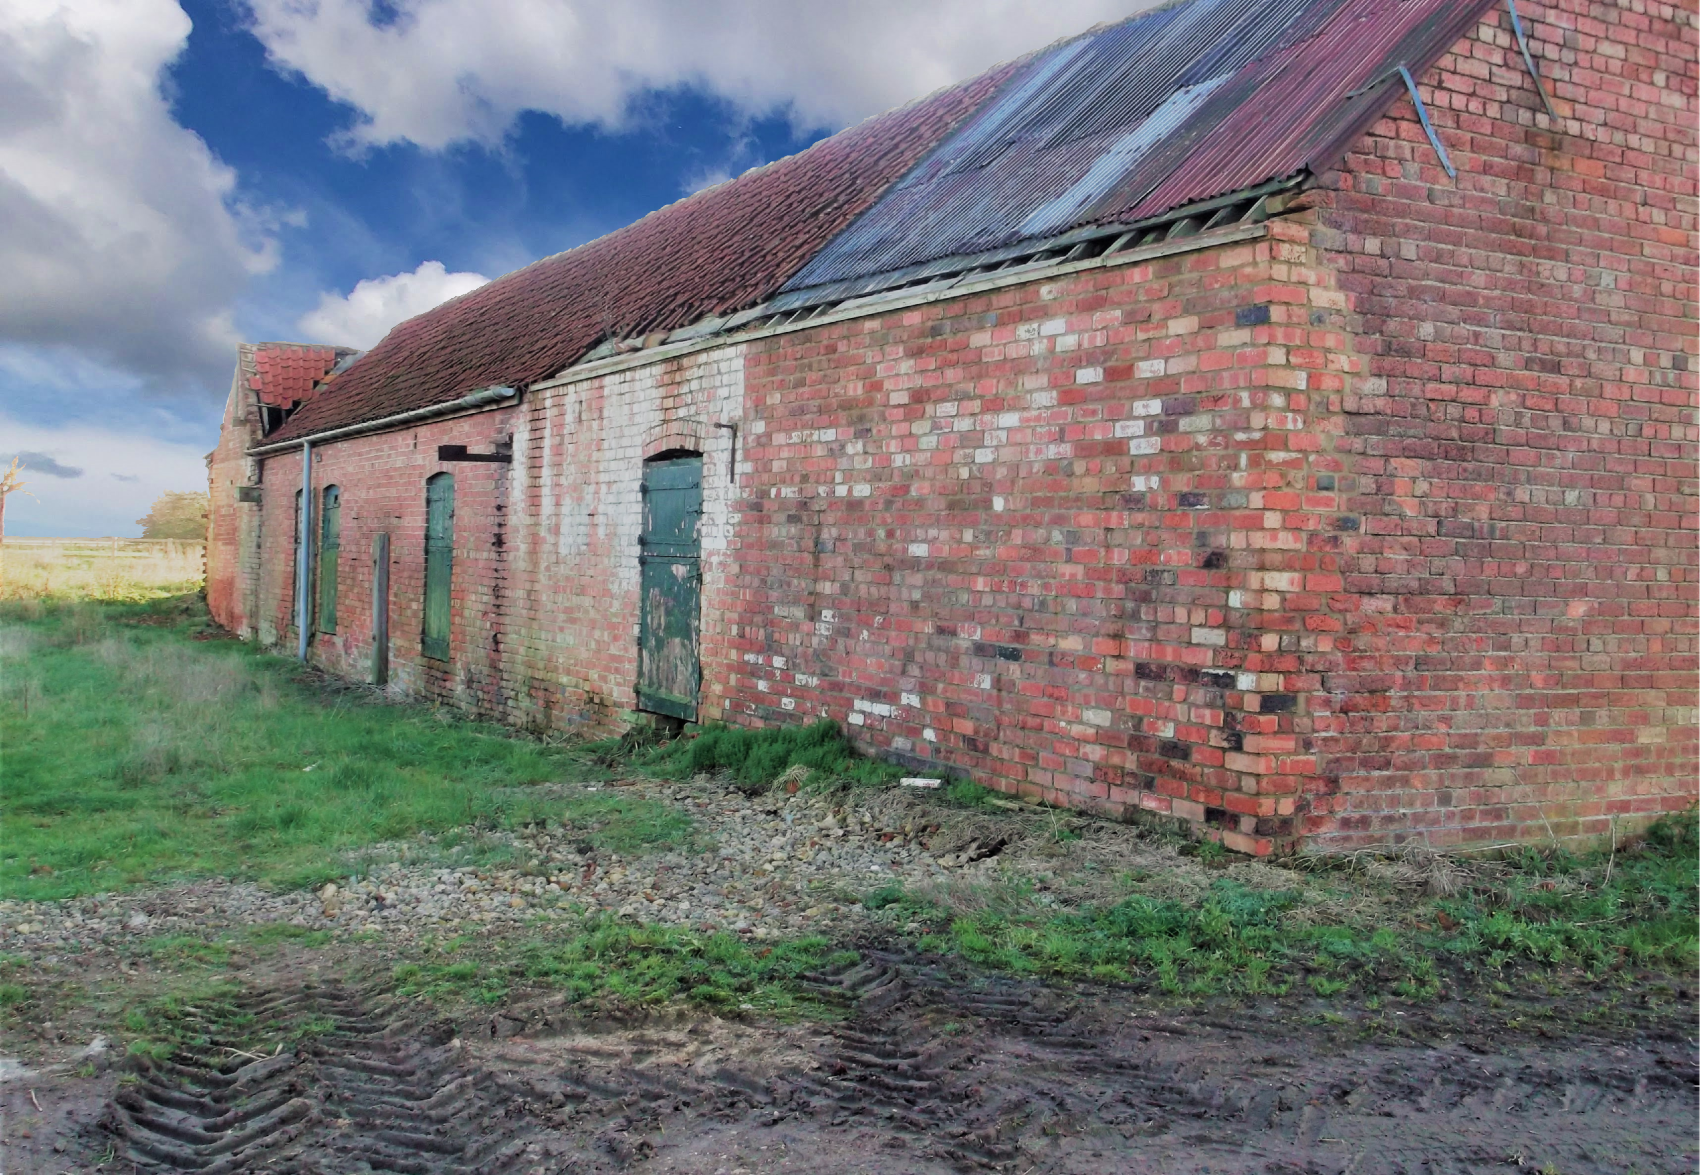 Planning Permission for the conversion of redundant agricultural buildings to form new commercial, retail and residential space in Lincolnshire